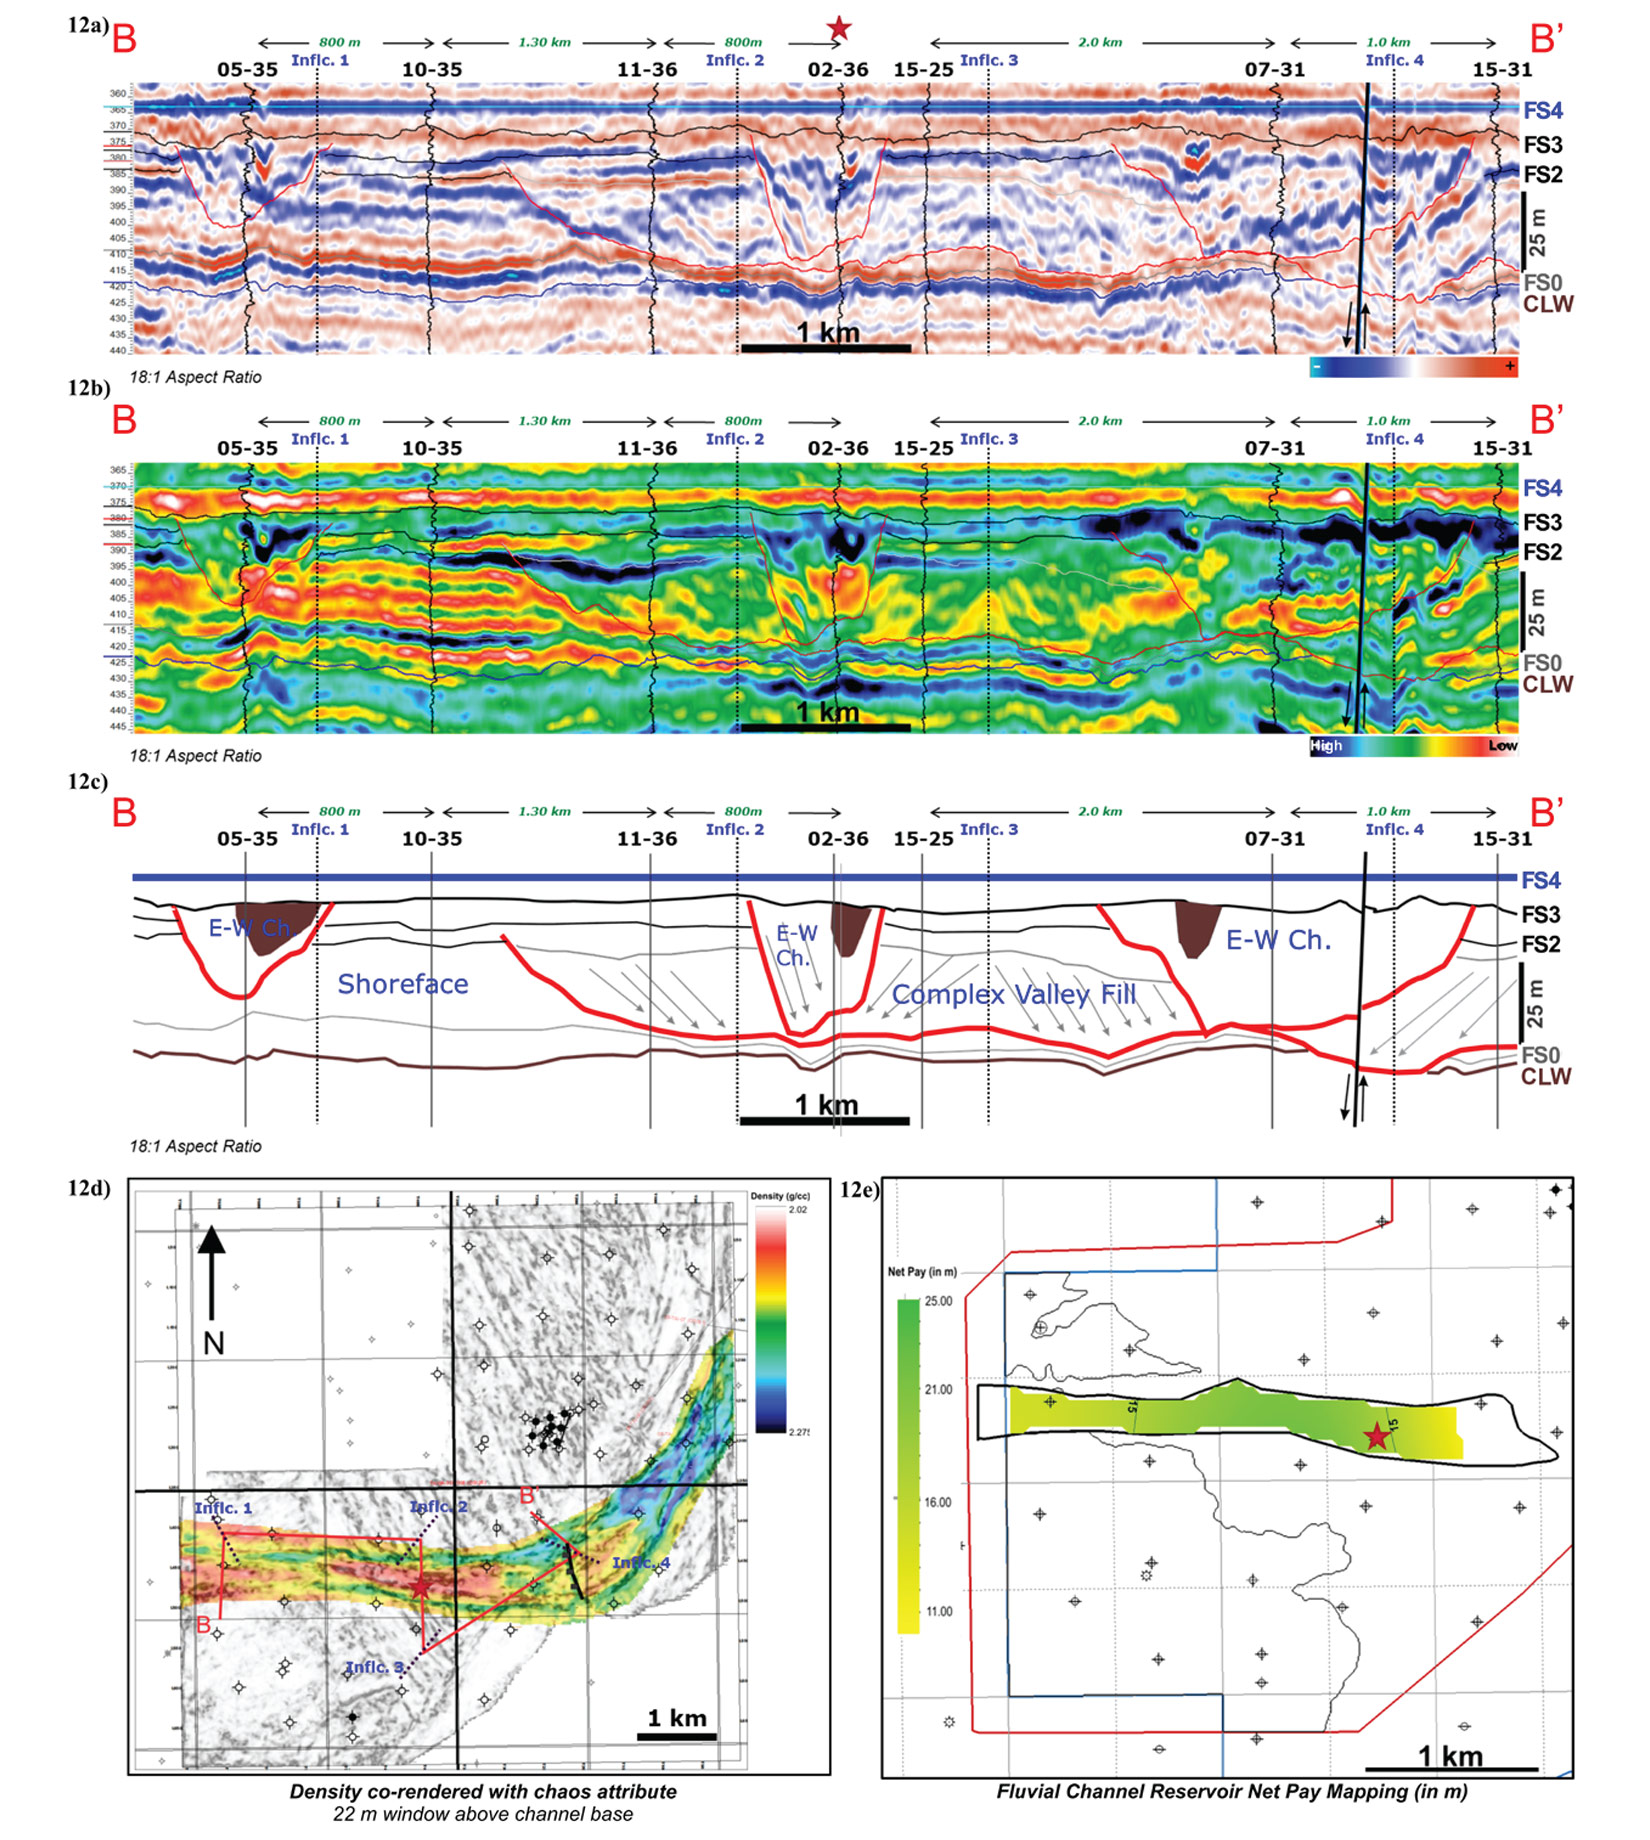 fluvial reservoirs Integrated studies in fluvial reservoirs characterisation of a geologically heterogeneous system such as fluvial reservoir system requires a multi-disciplinary integration where so this is not uncommon in practice the core plug permeability data from a fluvial meander-loop where the negative derivative slope is a reflection of the flow.